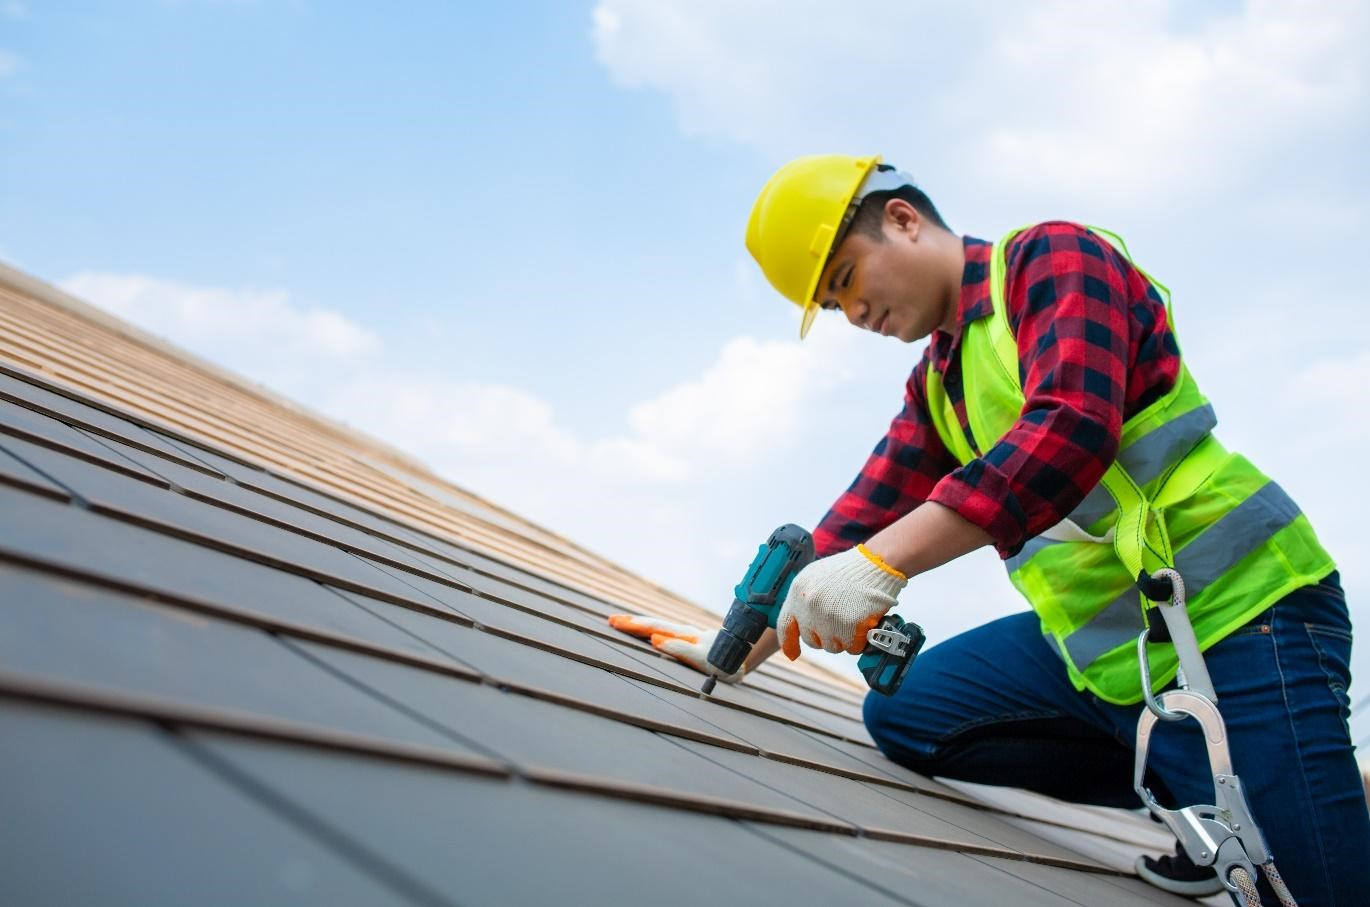 West Chicago Roofing Services